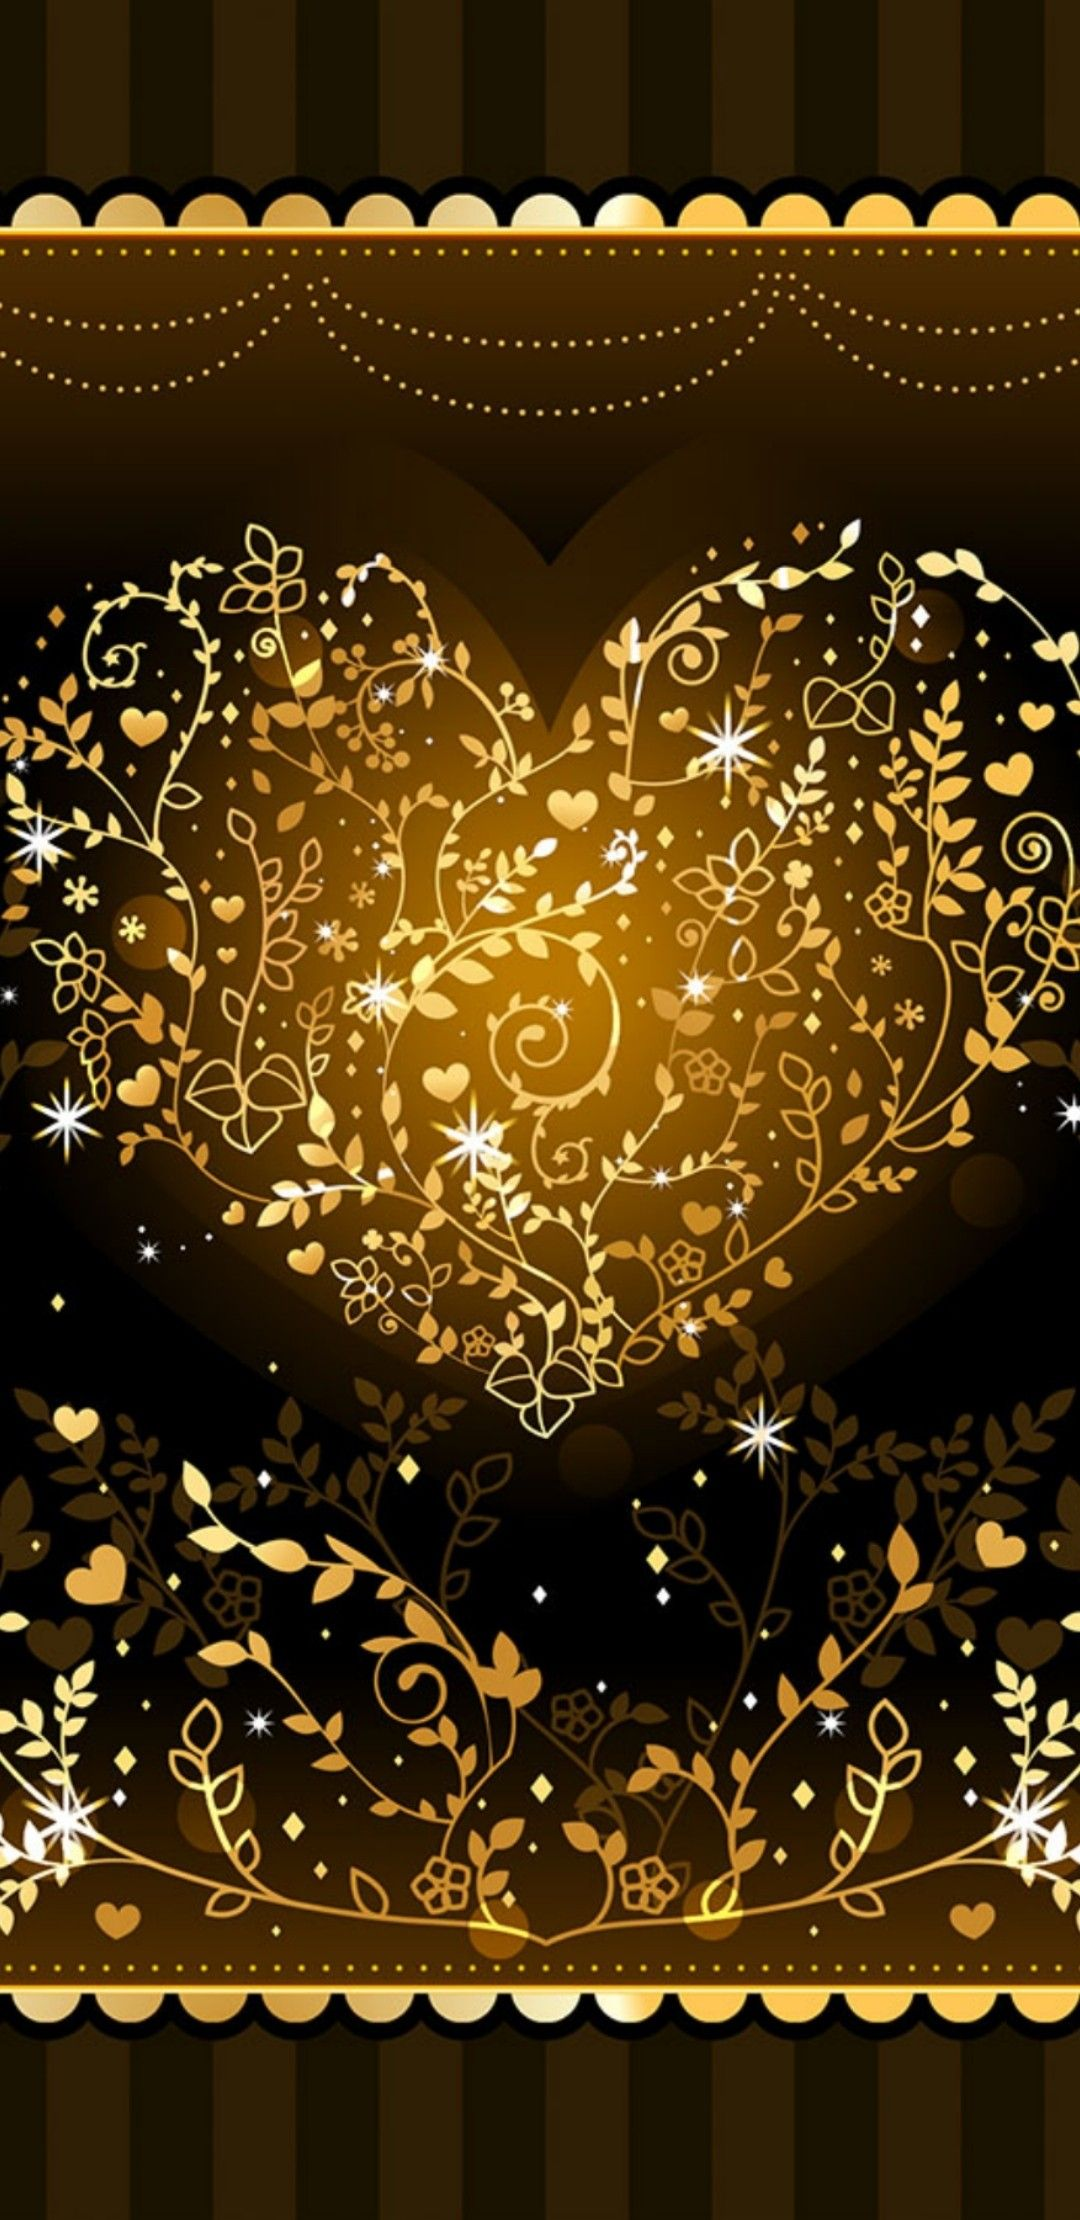 Pin By Kristen On Sparkly Wallpaper Bling Wallpaper Pretty Wallpapers Phone Wallpaper Patterns